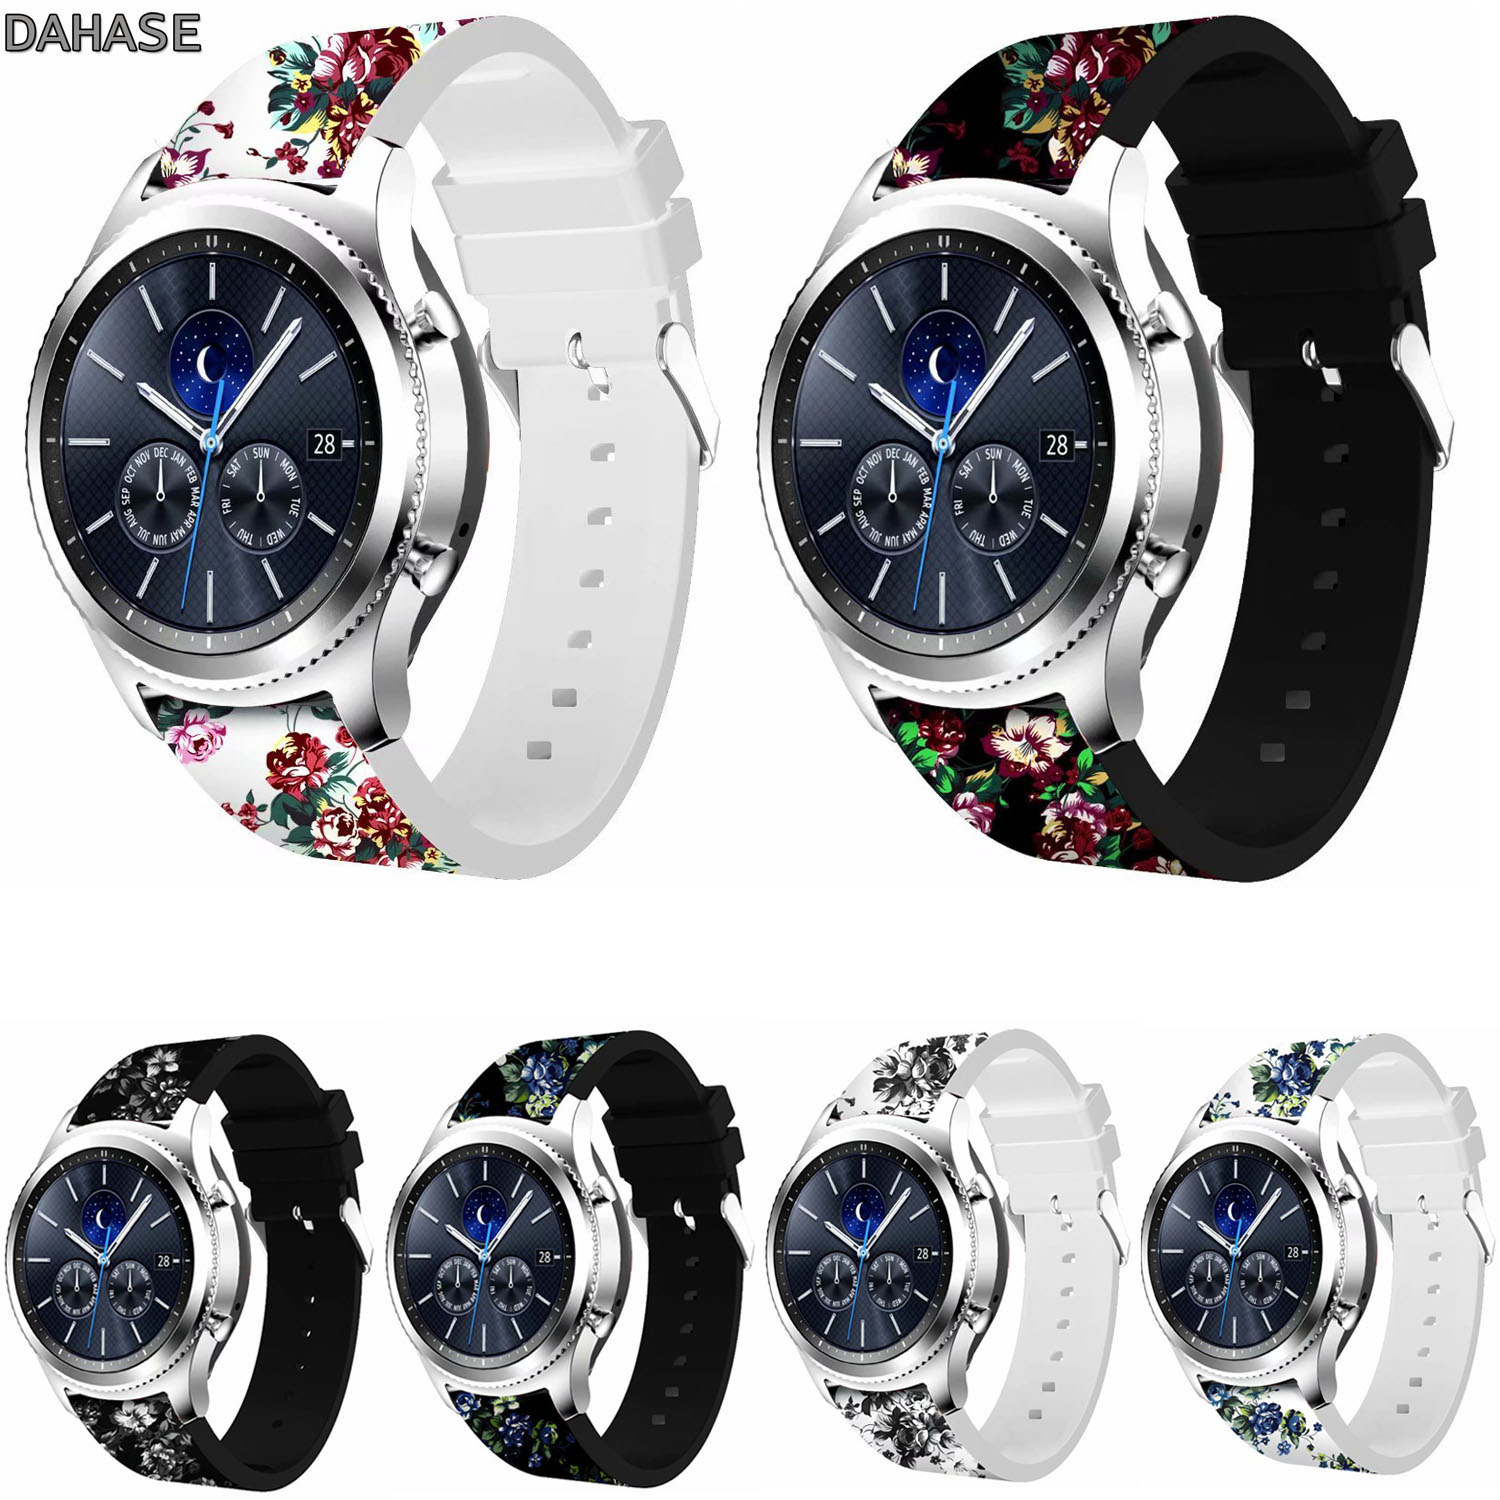 22mm Floral Silicone Watch Strap for Samsung Gear S3 Classic S3 Frontier Band Bracelet for Samsung Galaxy Watch 46mm Strap 18 colors rubber wrist strap for samsung gear s3 frontier silicone watch band for samsung gear s3 classic bracelet band 22mm